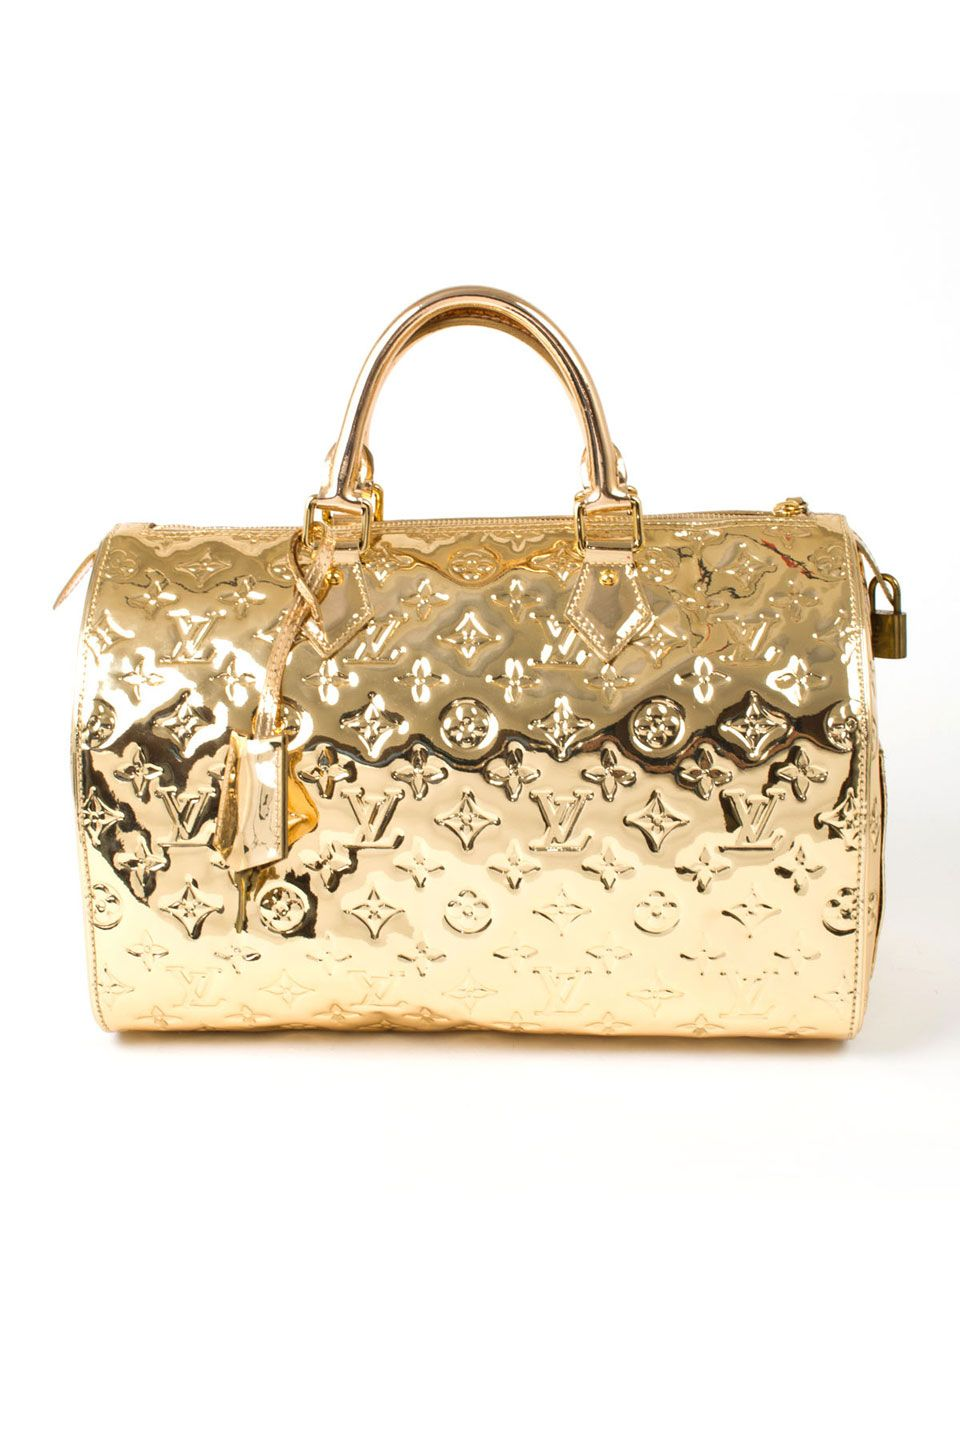 Lv limited edition miroir speedy 30 in gold tone louis for Louis vuitton miroir